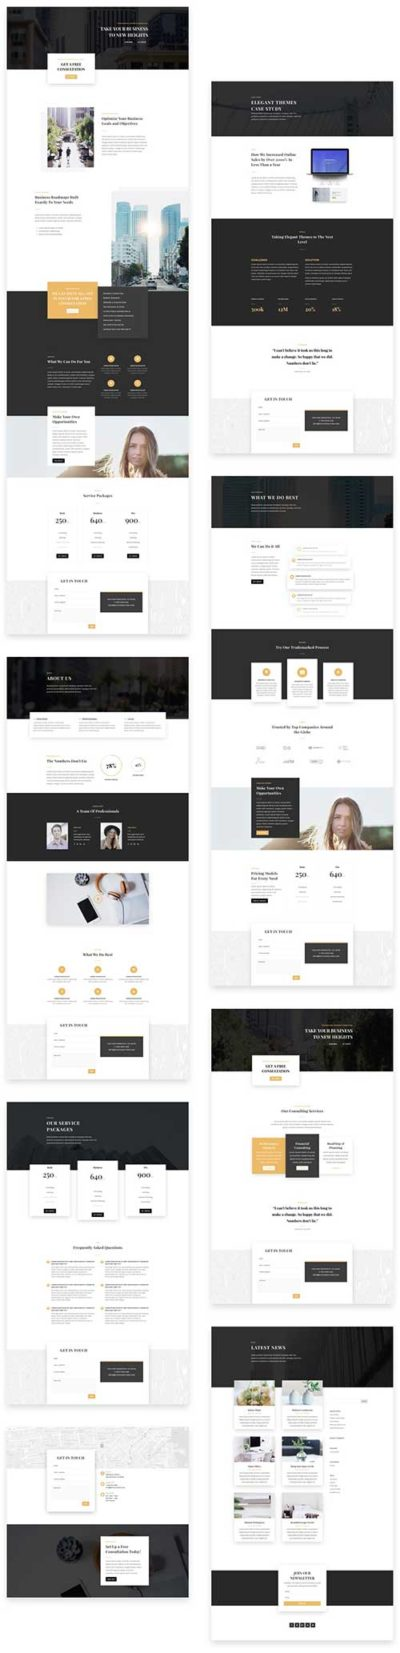 free divi layout for business consultant